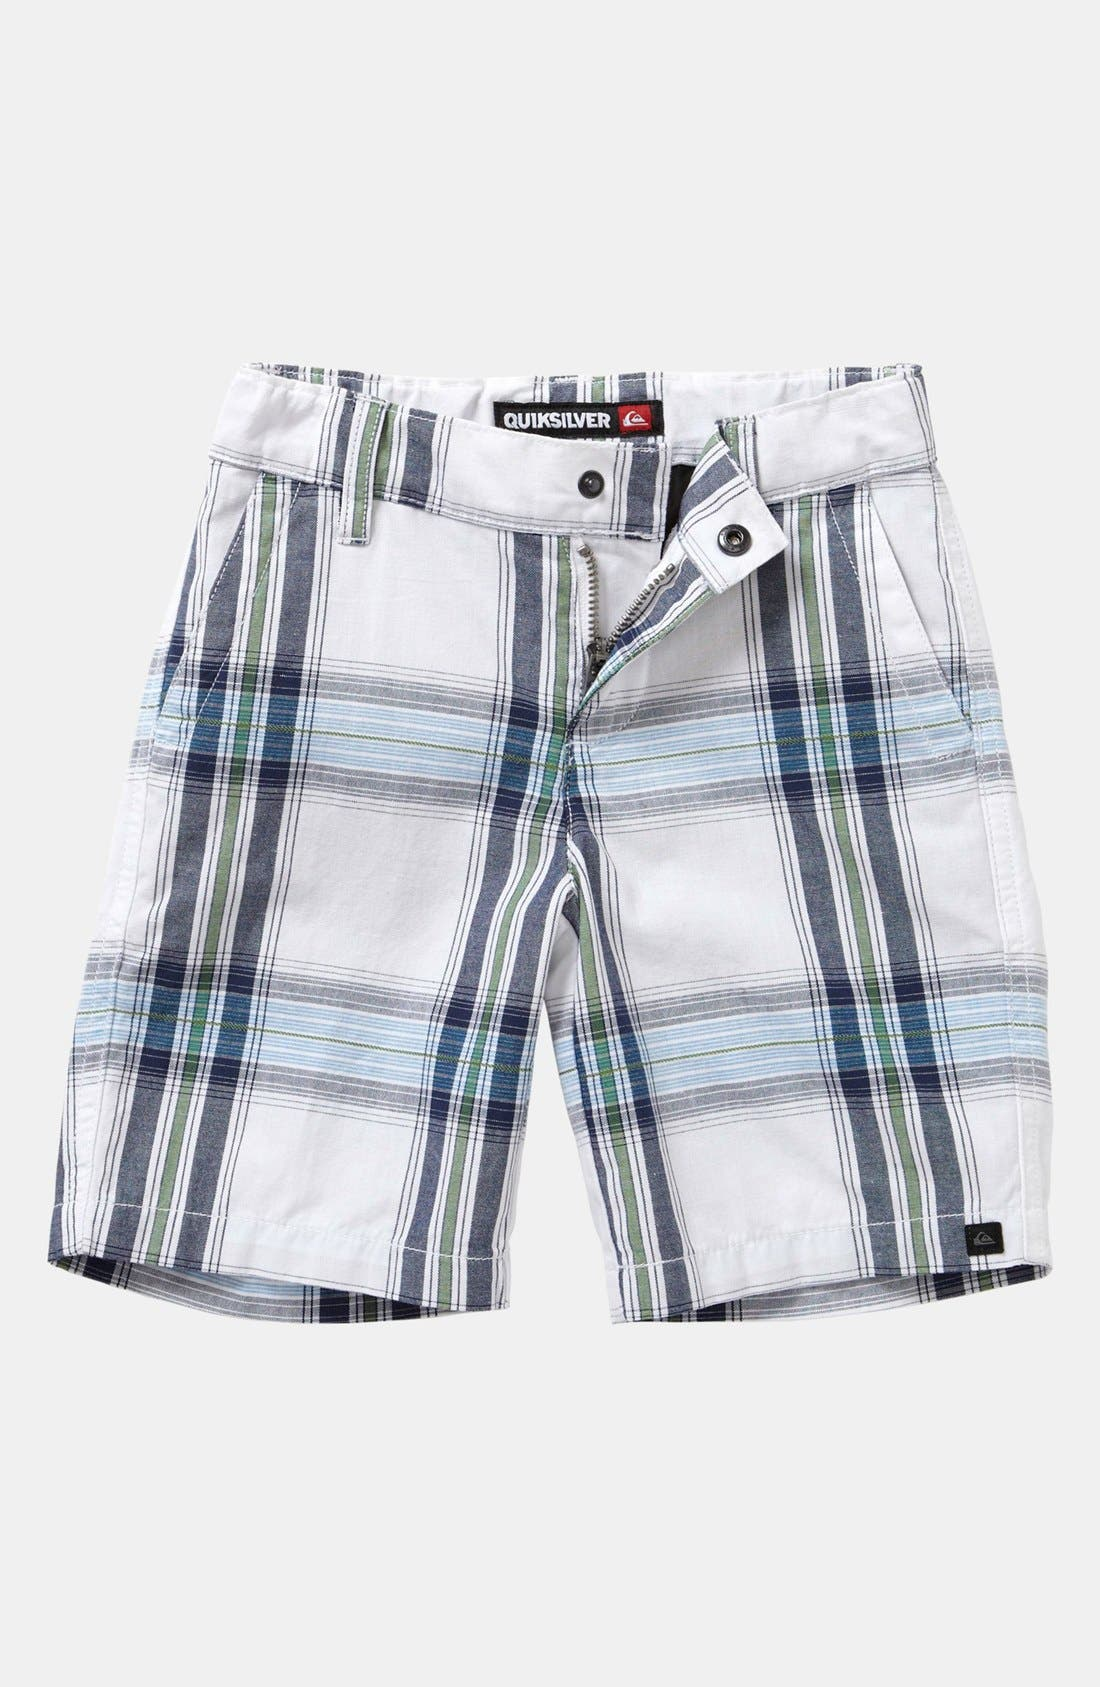 Main Image - Quiksilver 'Outstanding' Plaid Shorts (Toddler Boys)